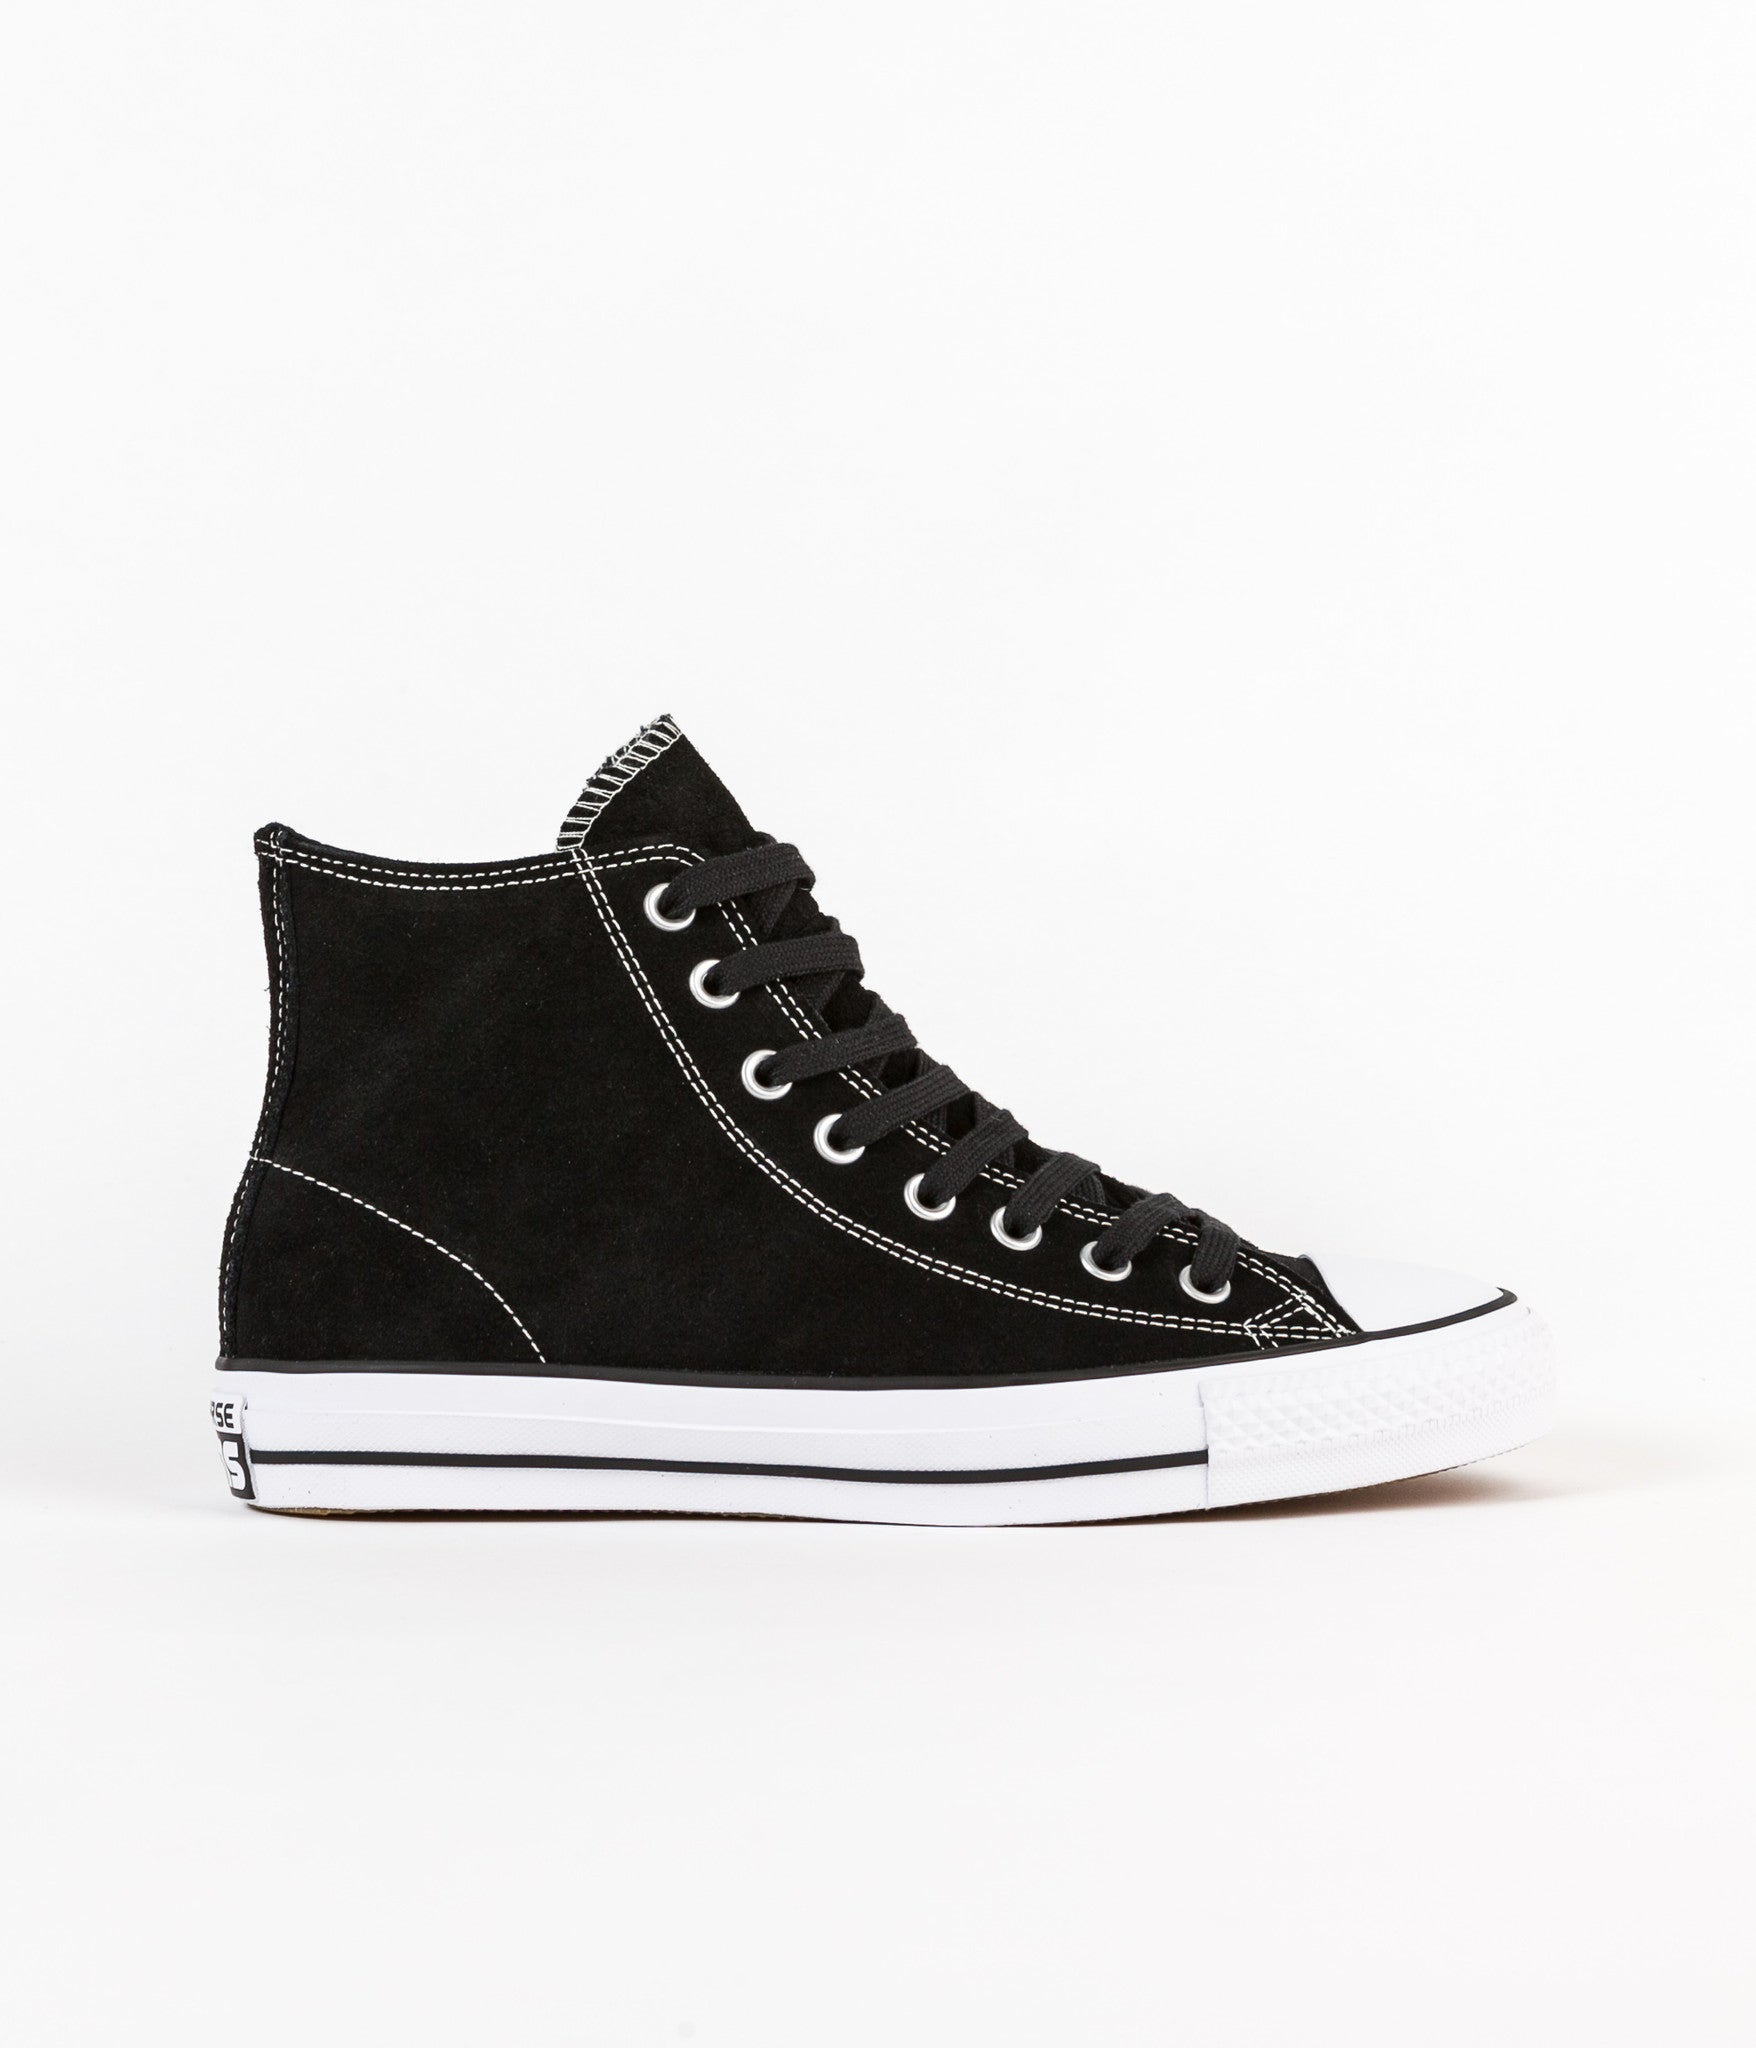 Converse CTAS Pro Hi Shoes - Black / White